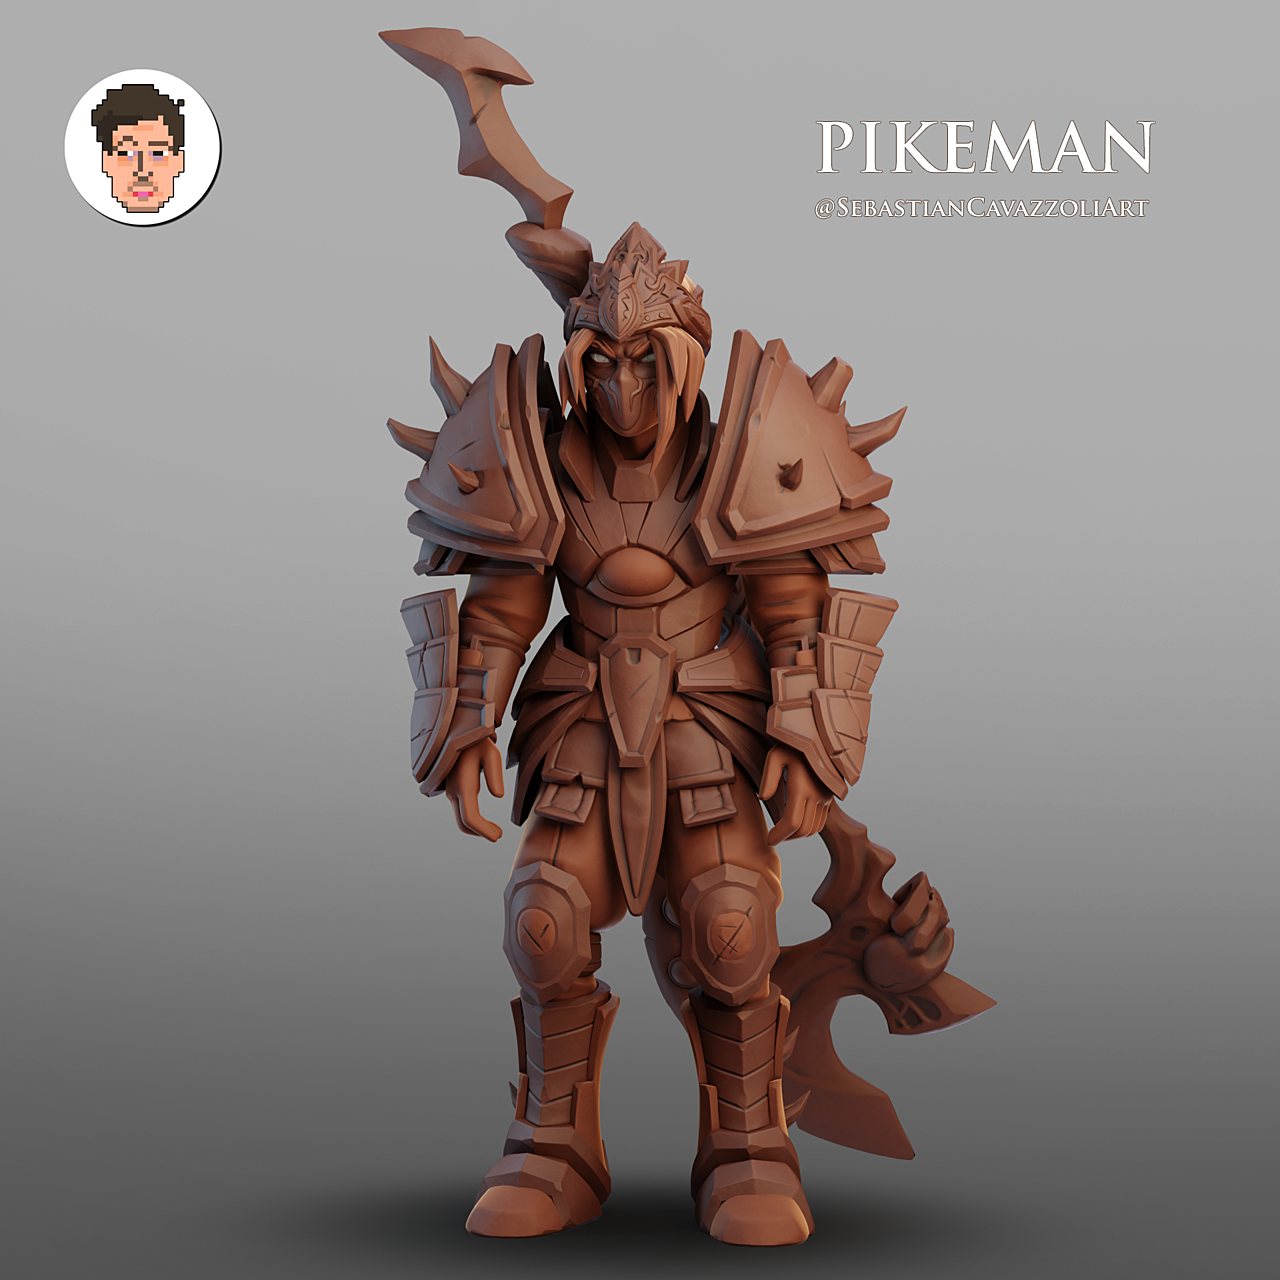 Pikeman from Priston Tale Fanart